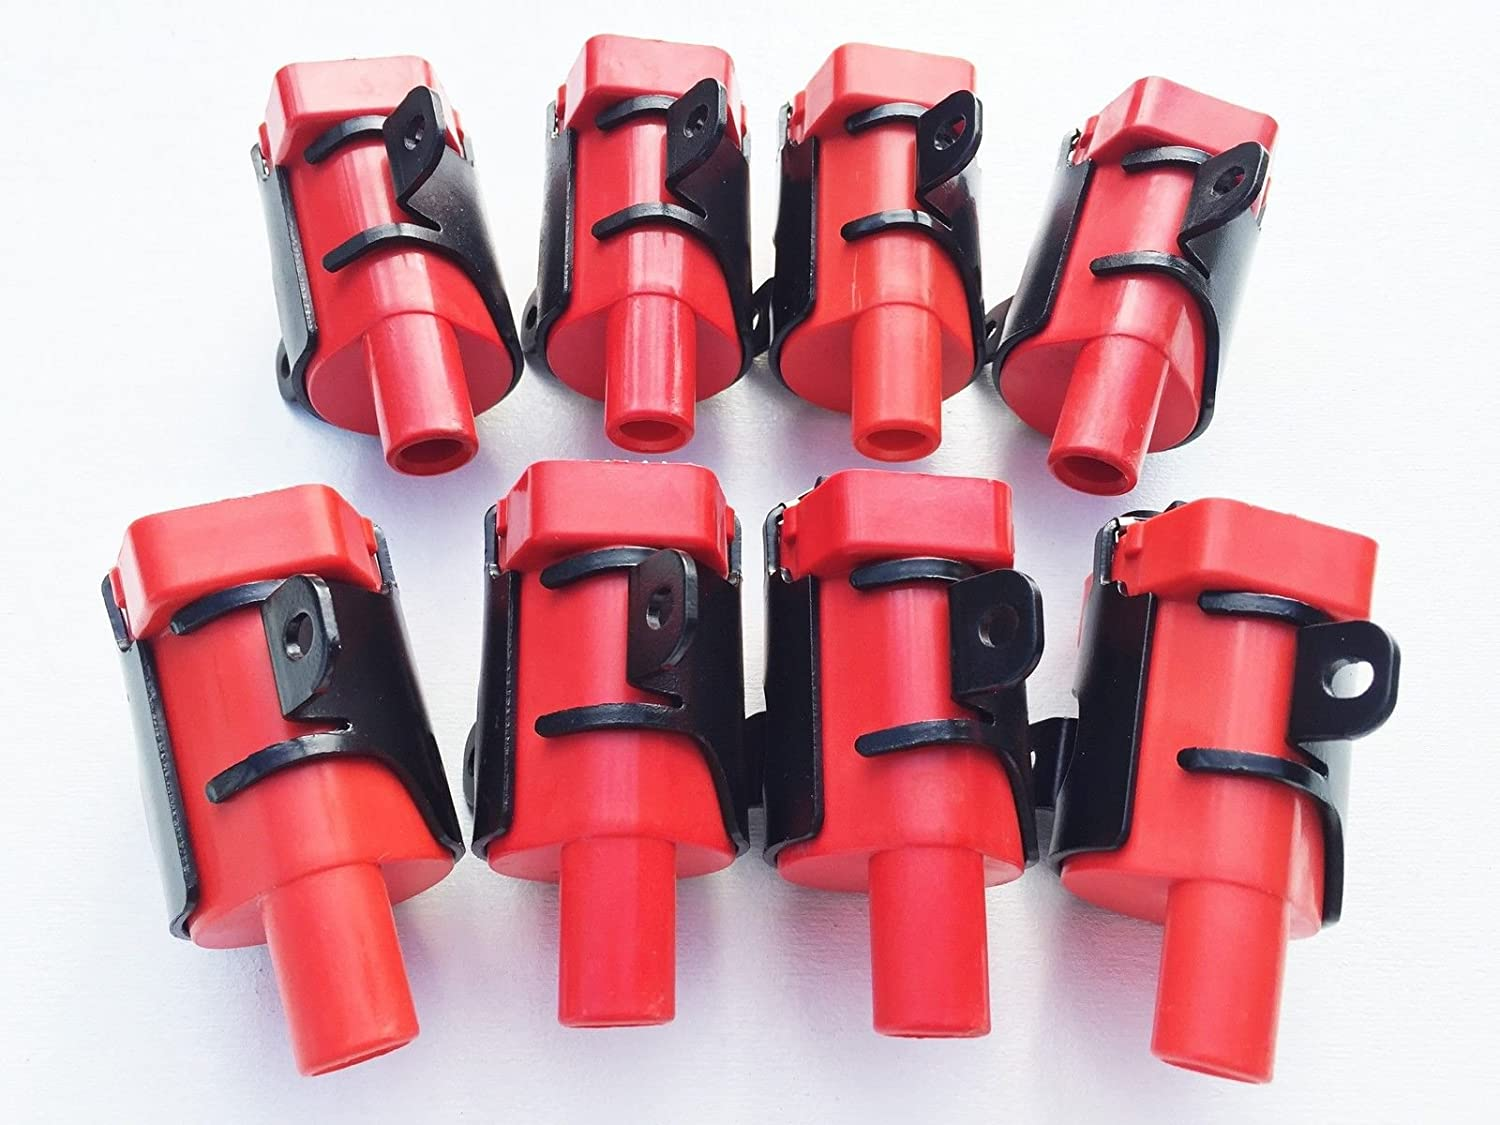 8 Performance IGNITION COIL Packs Coils for GMC GM HUMMER CHEVY ISUZU CADILLAC 4.8L 5.2L 6.0L 4.8 5.2 6.0 1999-2007